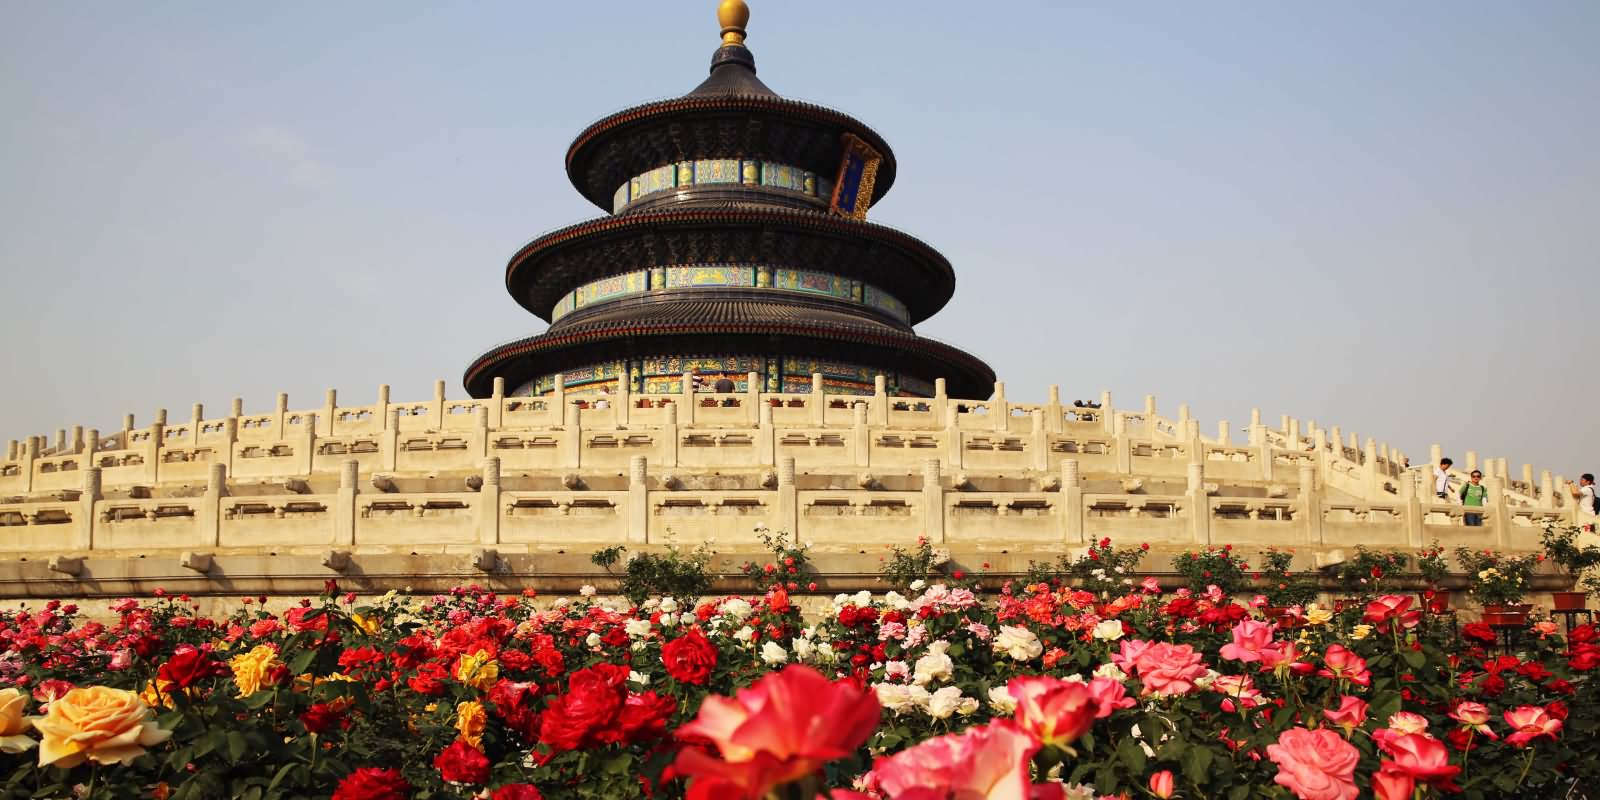 the temple of heaven See more of the temple of heaven and earth on facebook do you hear the call of the queen of heaven deep in your heart would you like to follow an authentic spiritual tradition that will lead to the illumination of your soul, then this could be the book for youishtaritu: path of the pries.